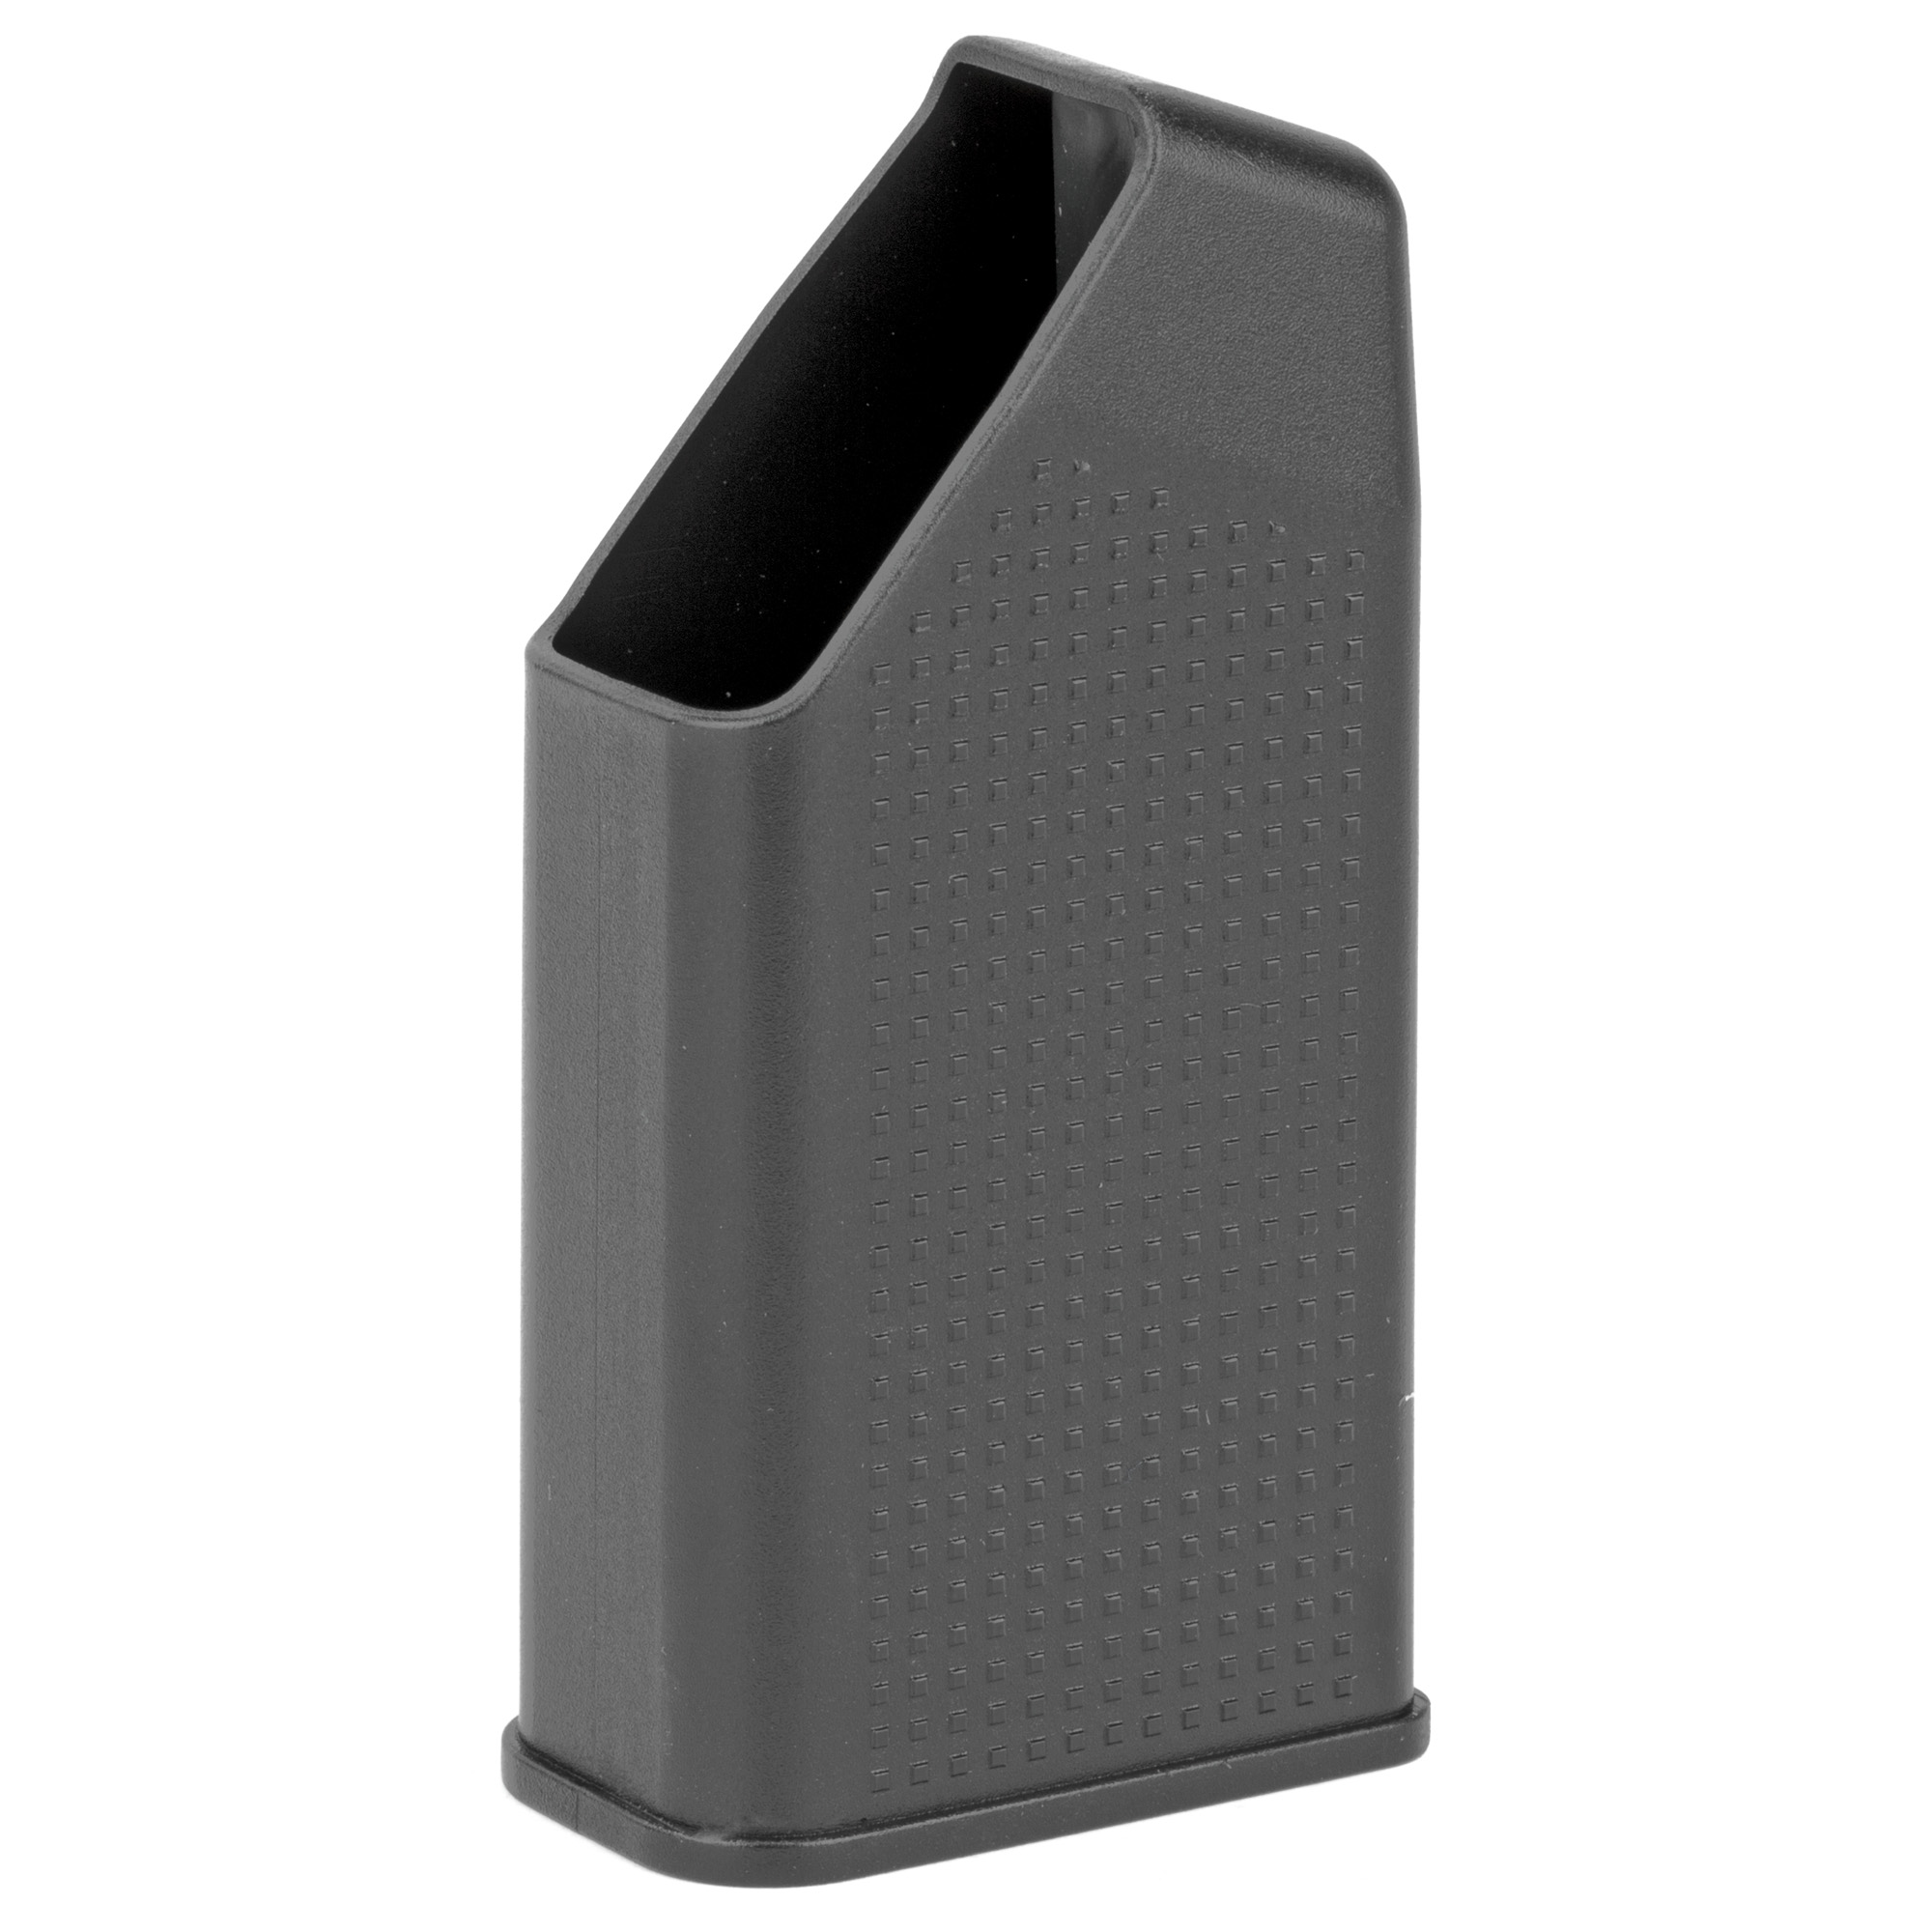 Glock Oem Mag Speed Ldr G43 9mm Slim